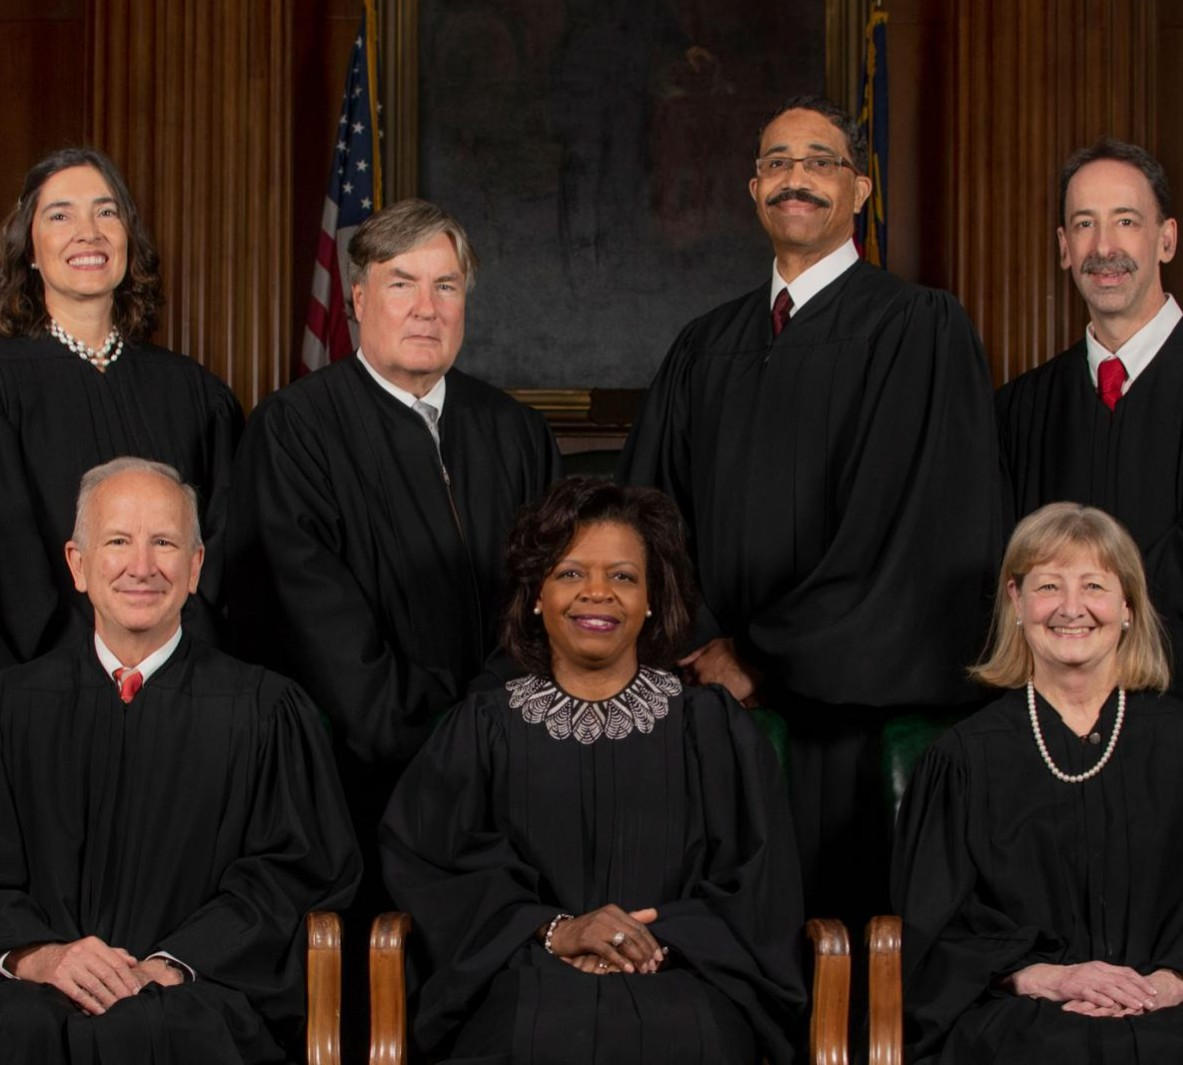 5 state supreme courts that changed dramatically in 2019 - The Supreme Courts